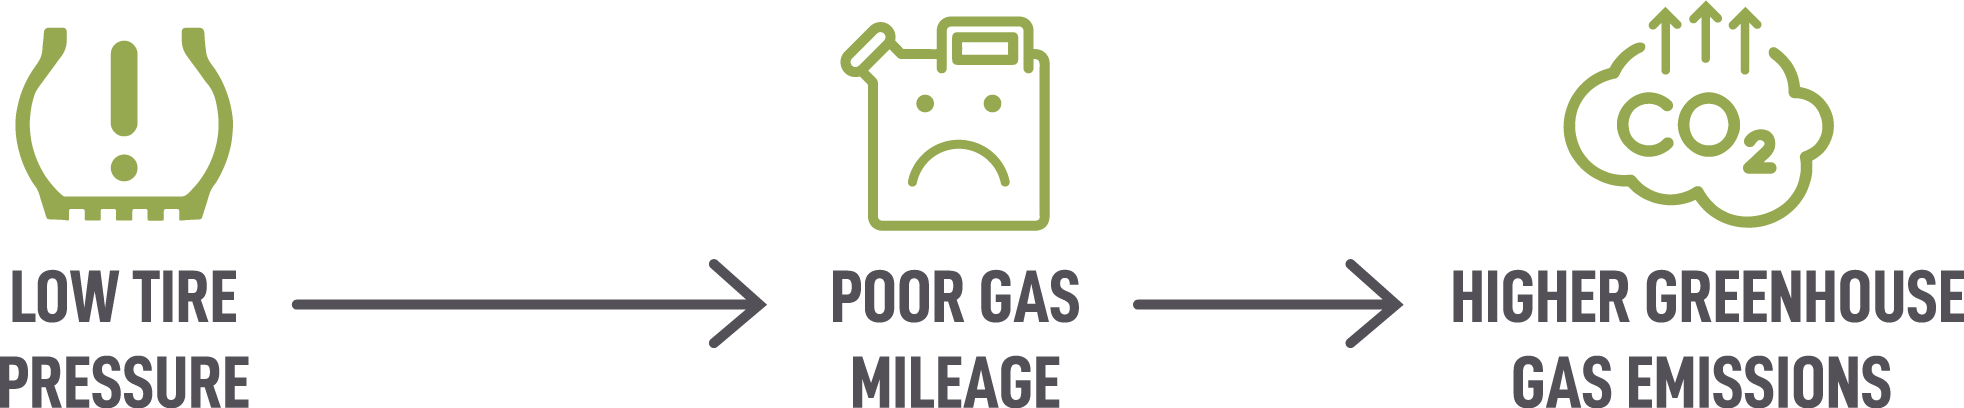 Low Tire Pressure leads to Poor Gas Mileage leads to Green House Gas Emmisions